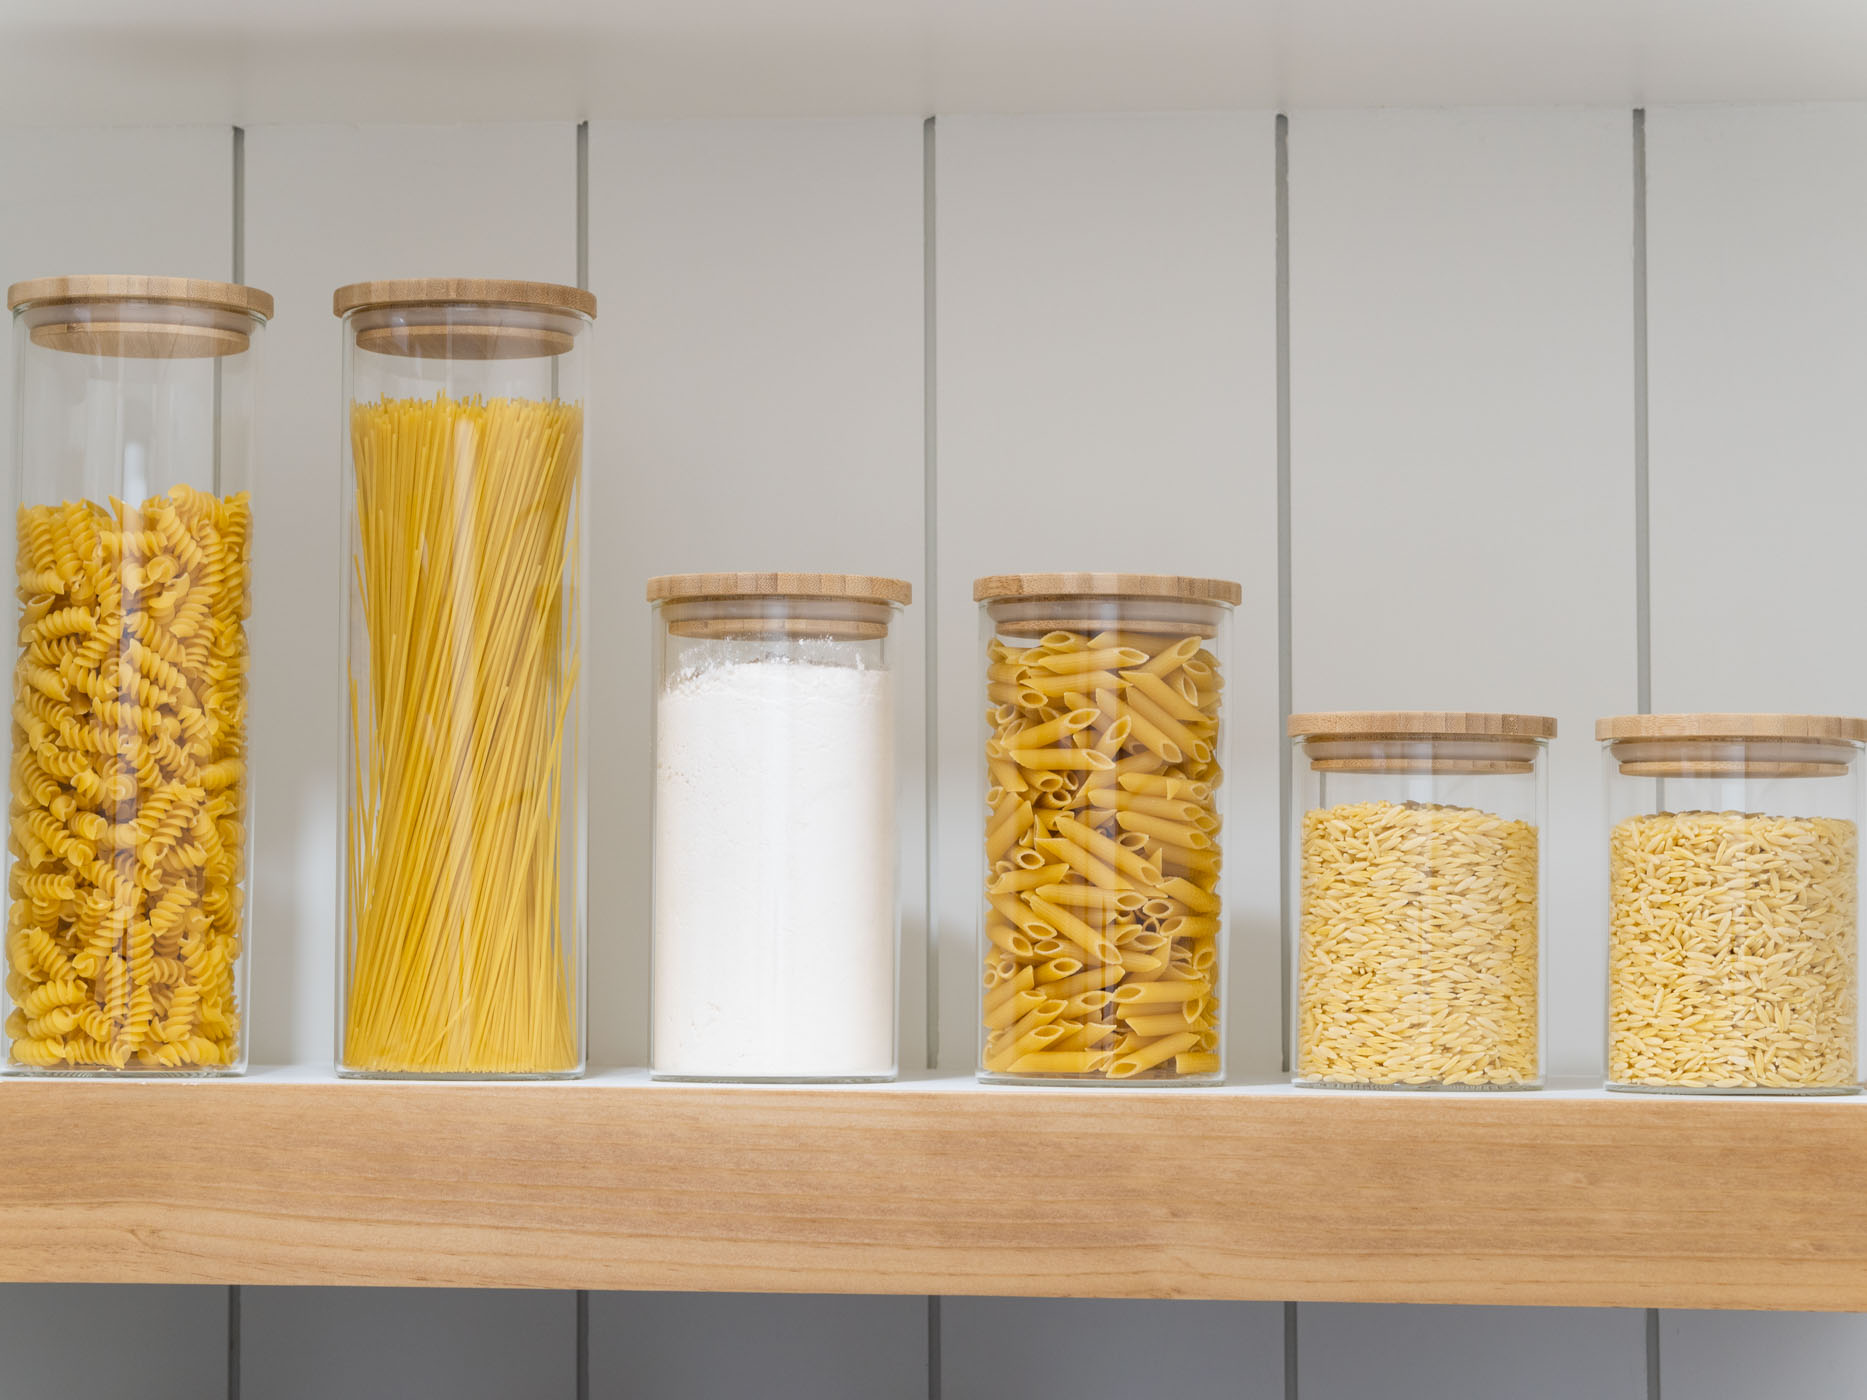 a picture showing 6 glass storage jars with bamboo lids